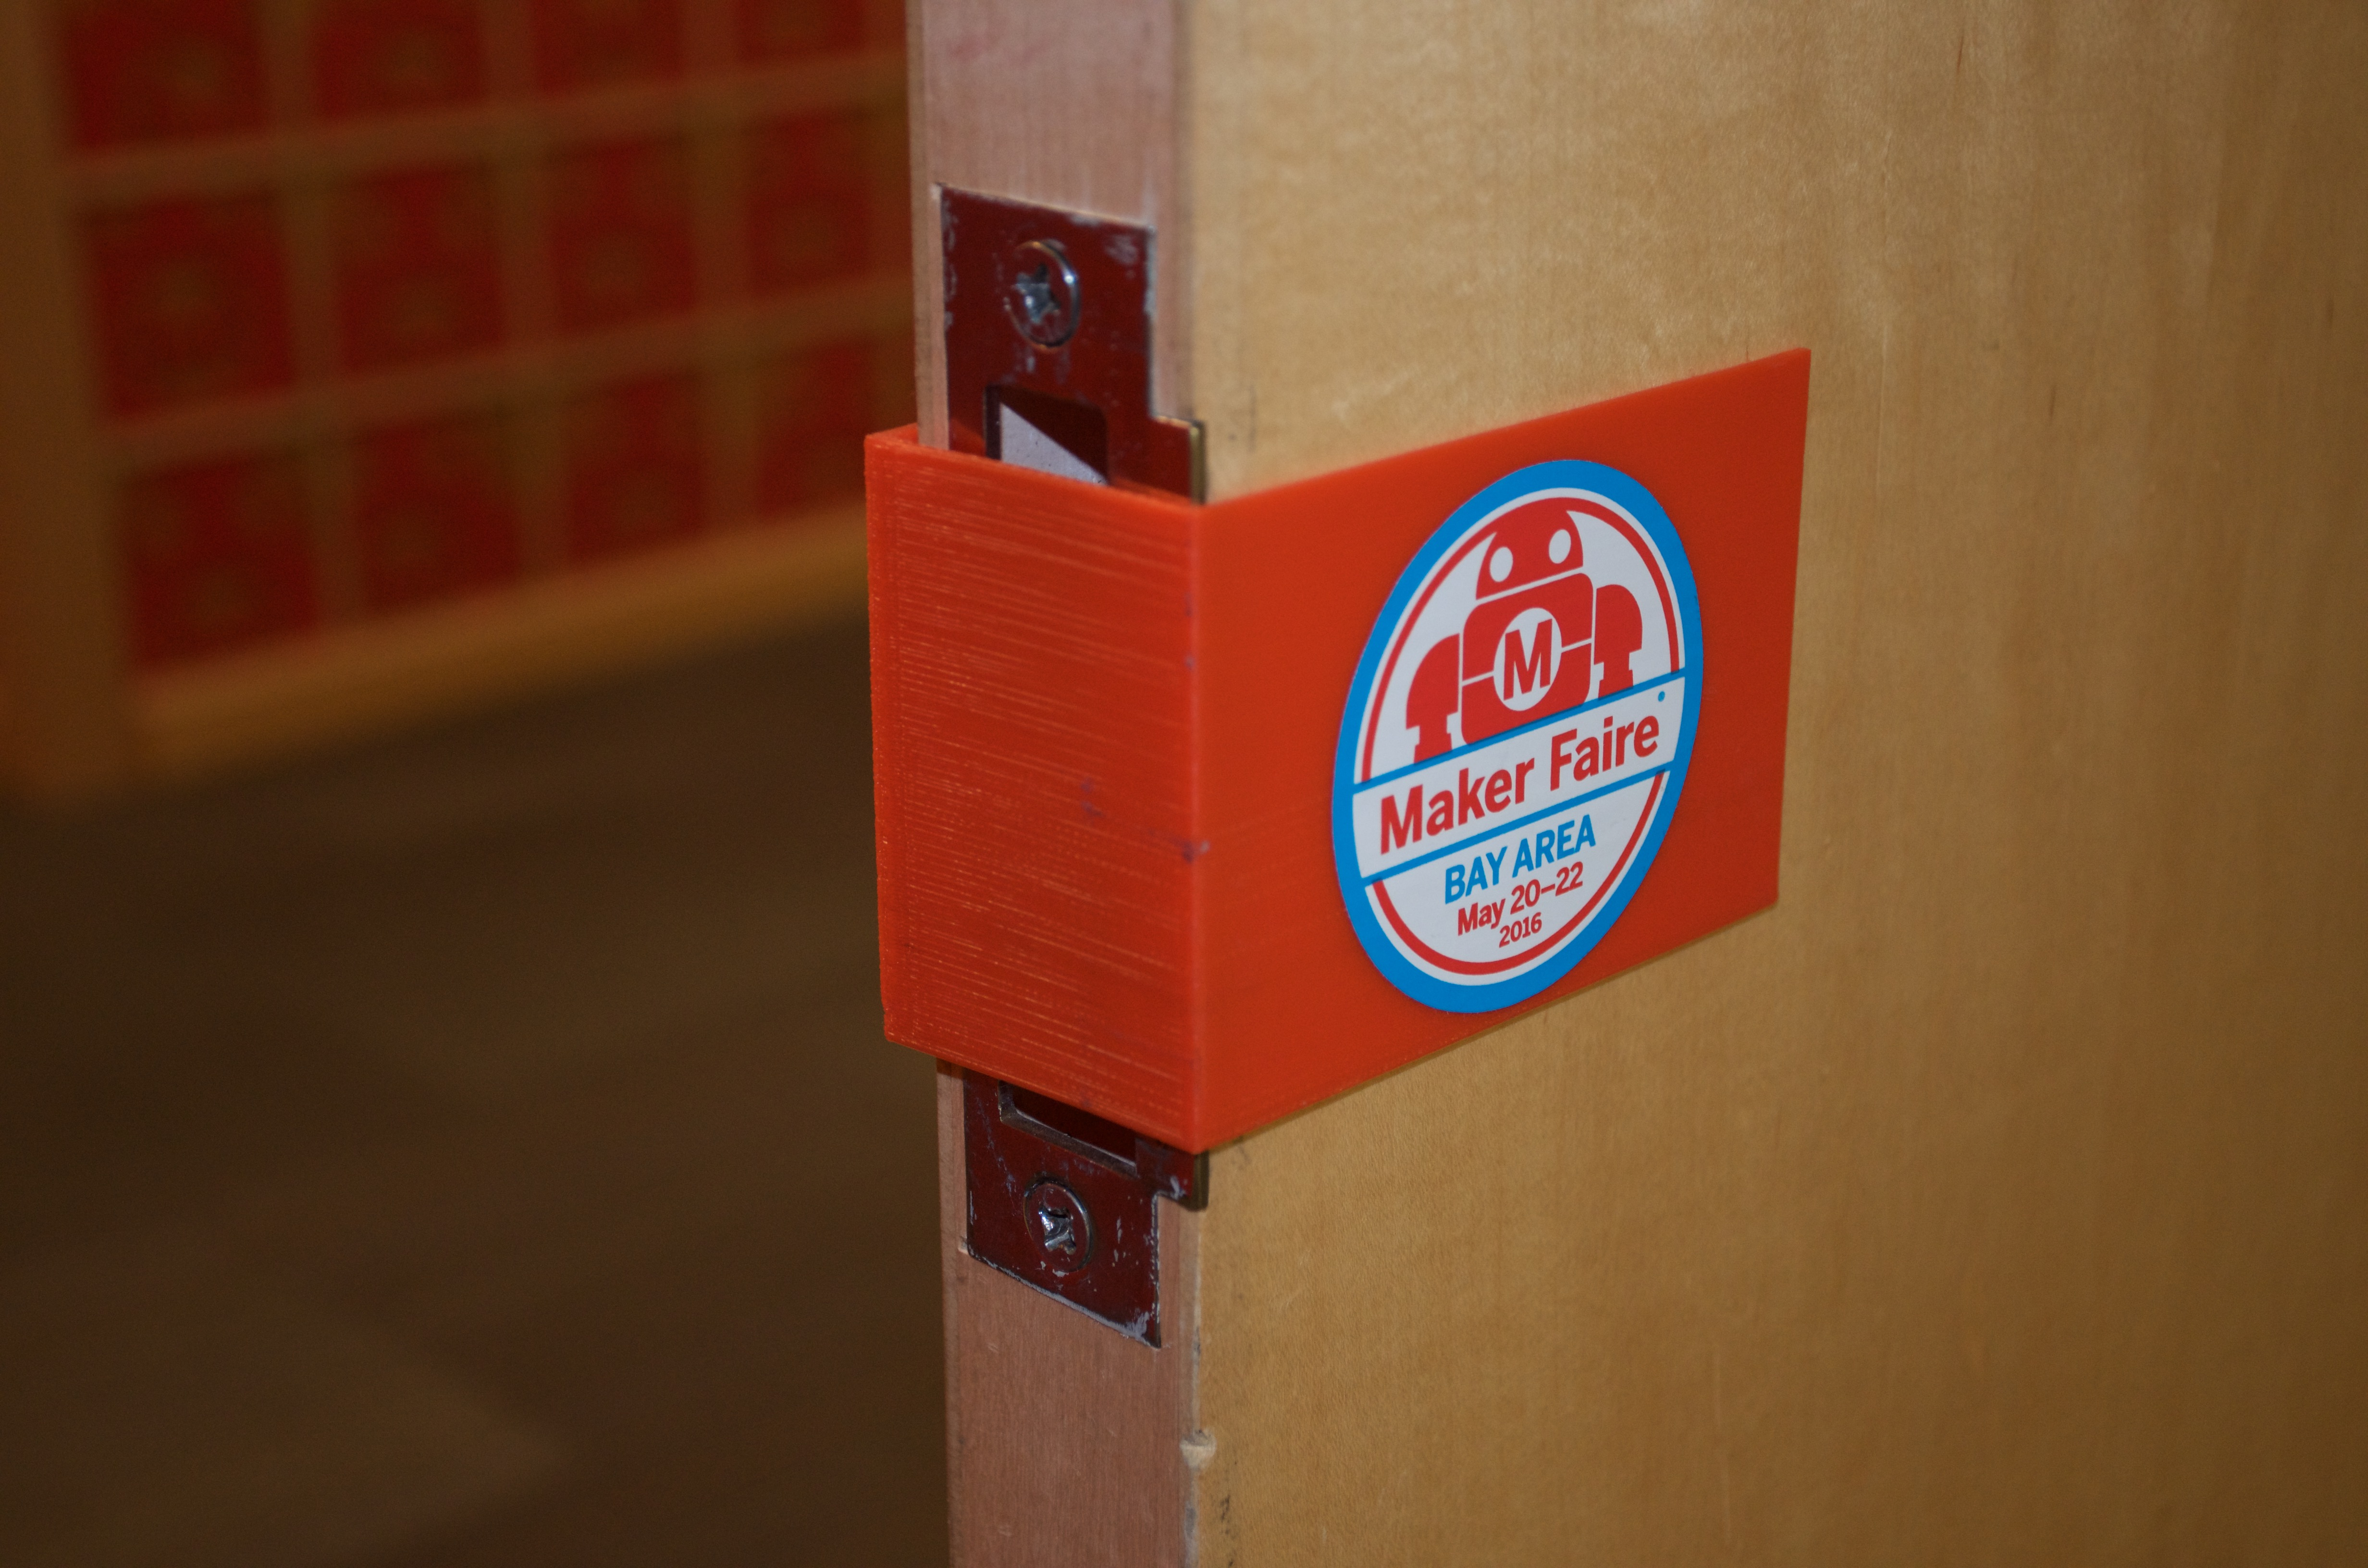 Here's to Simple Builds: Or How a Door Stop Changed Our Lives